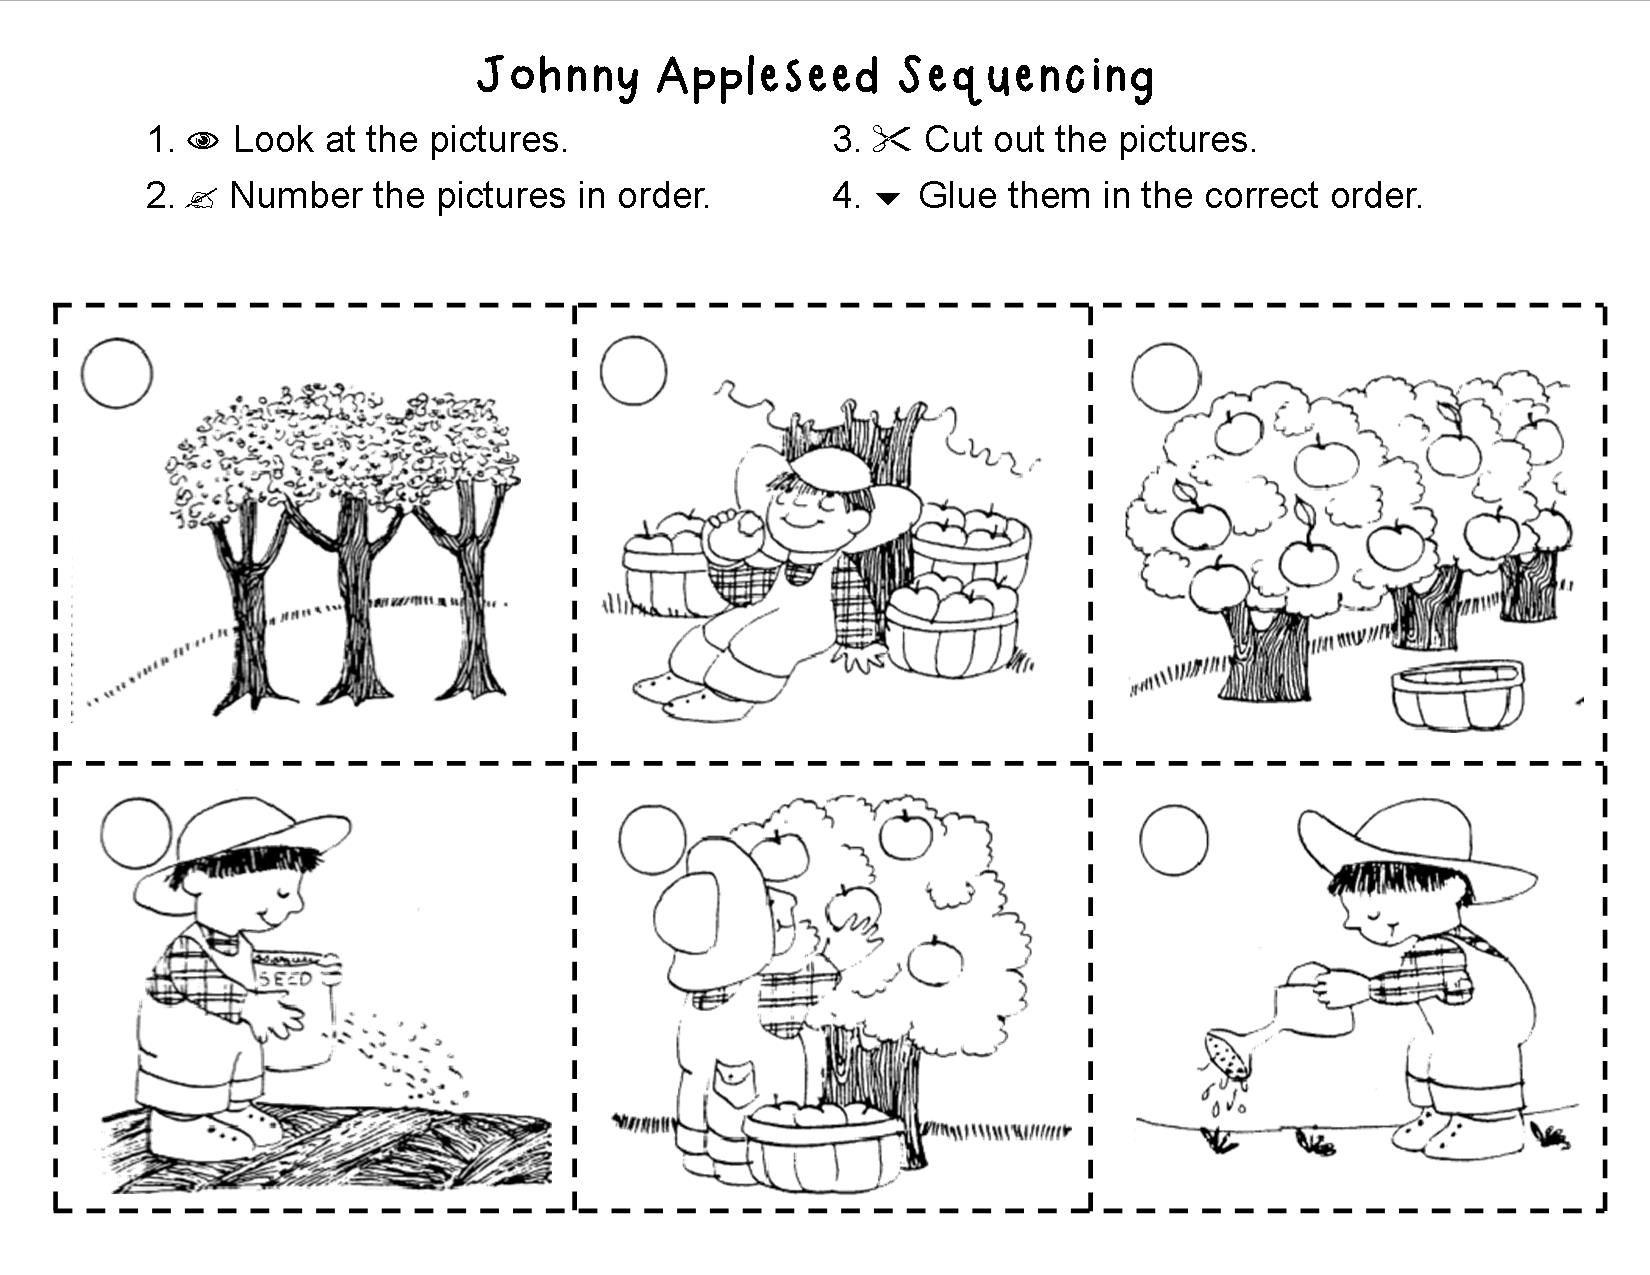 Worksheets Johnny Appleseed Worksheets johnny appleseed sequencing made for 1st grade kindergarten grade